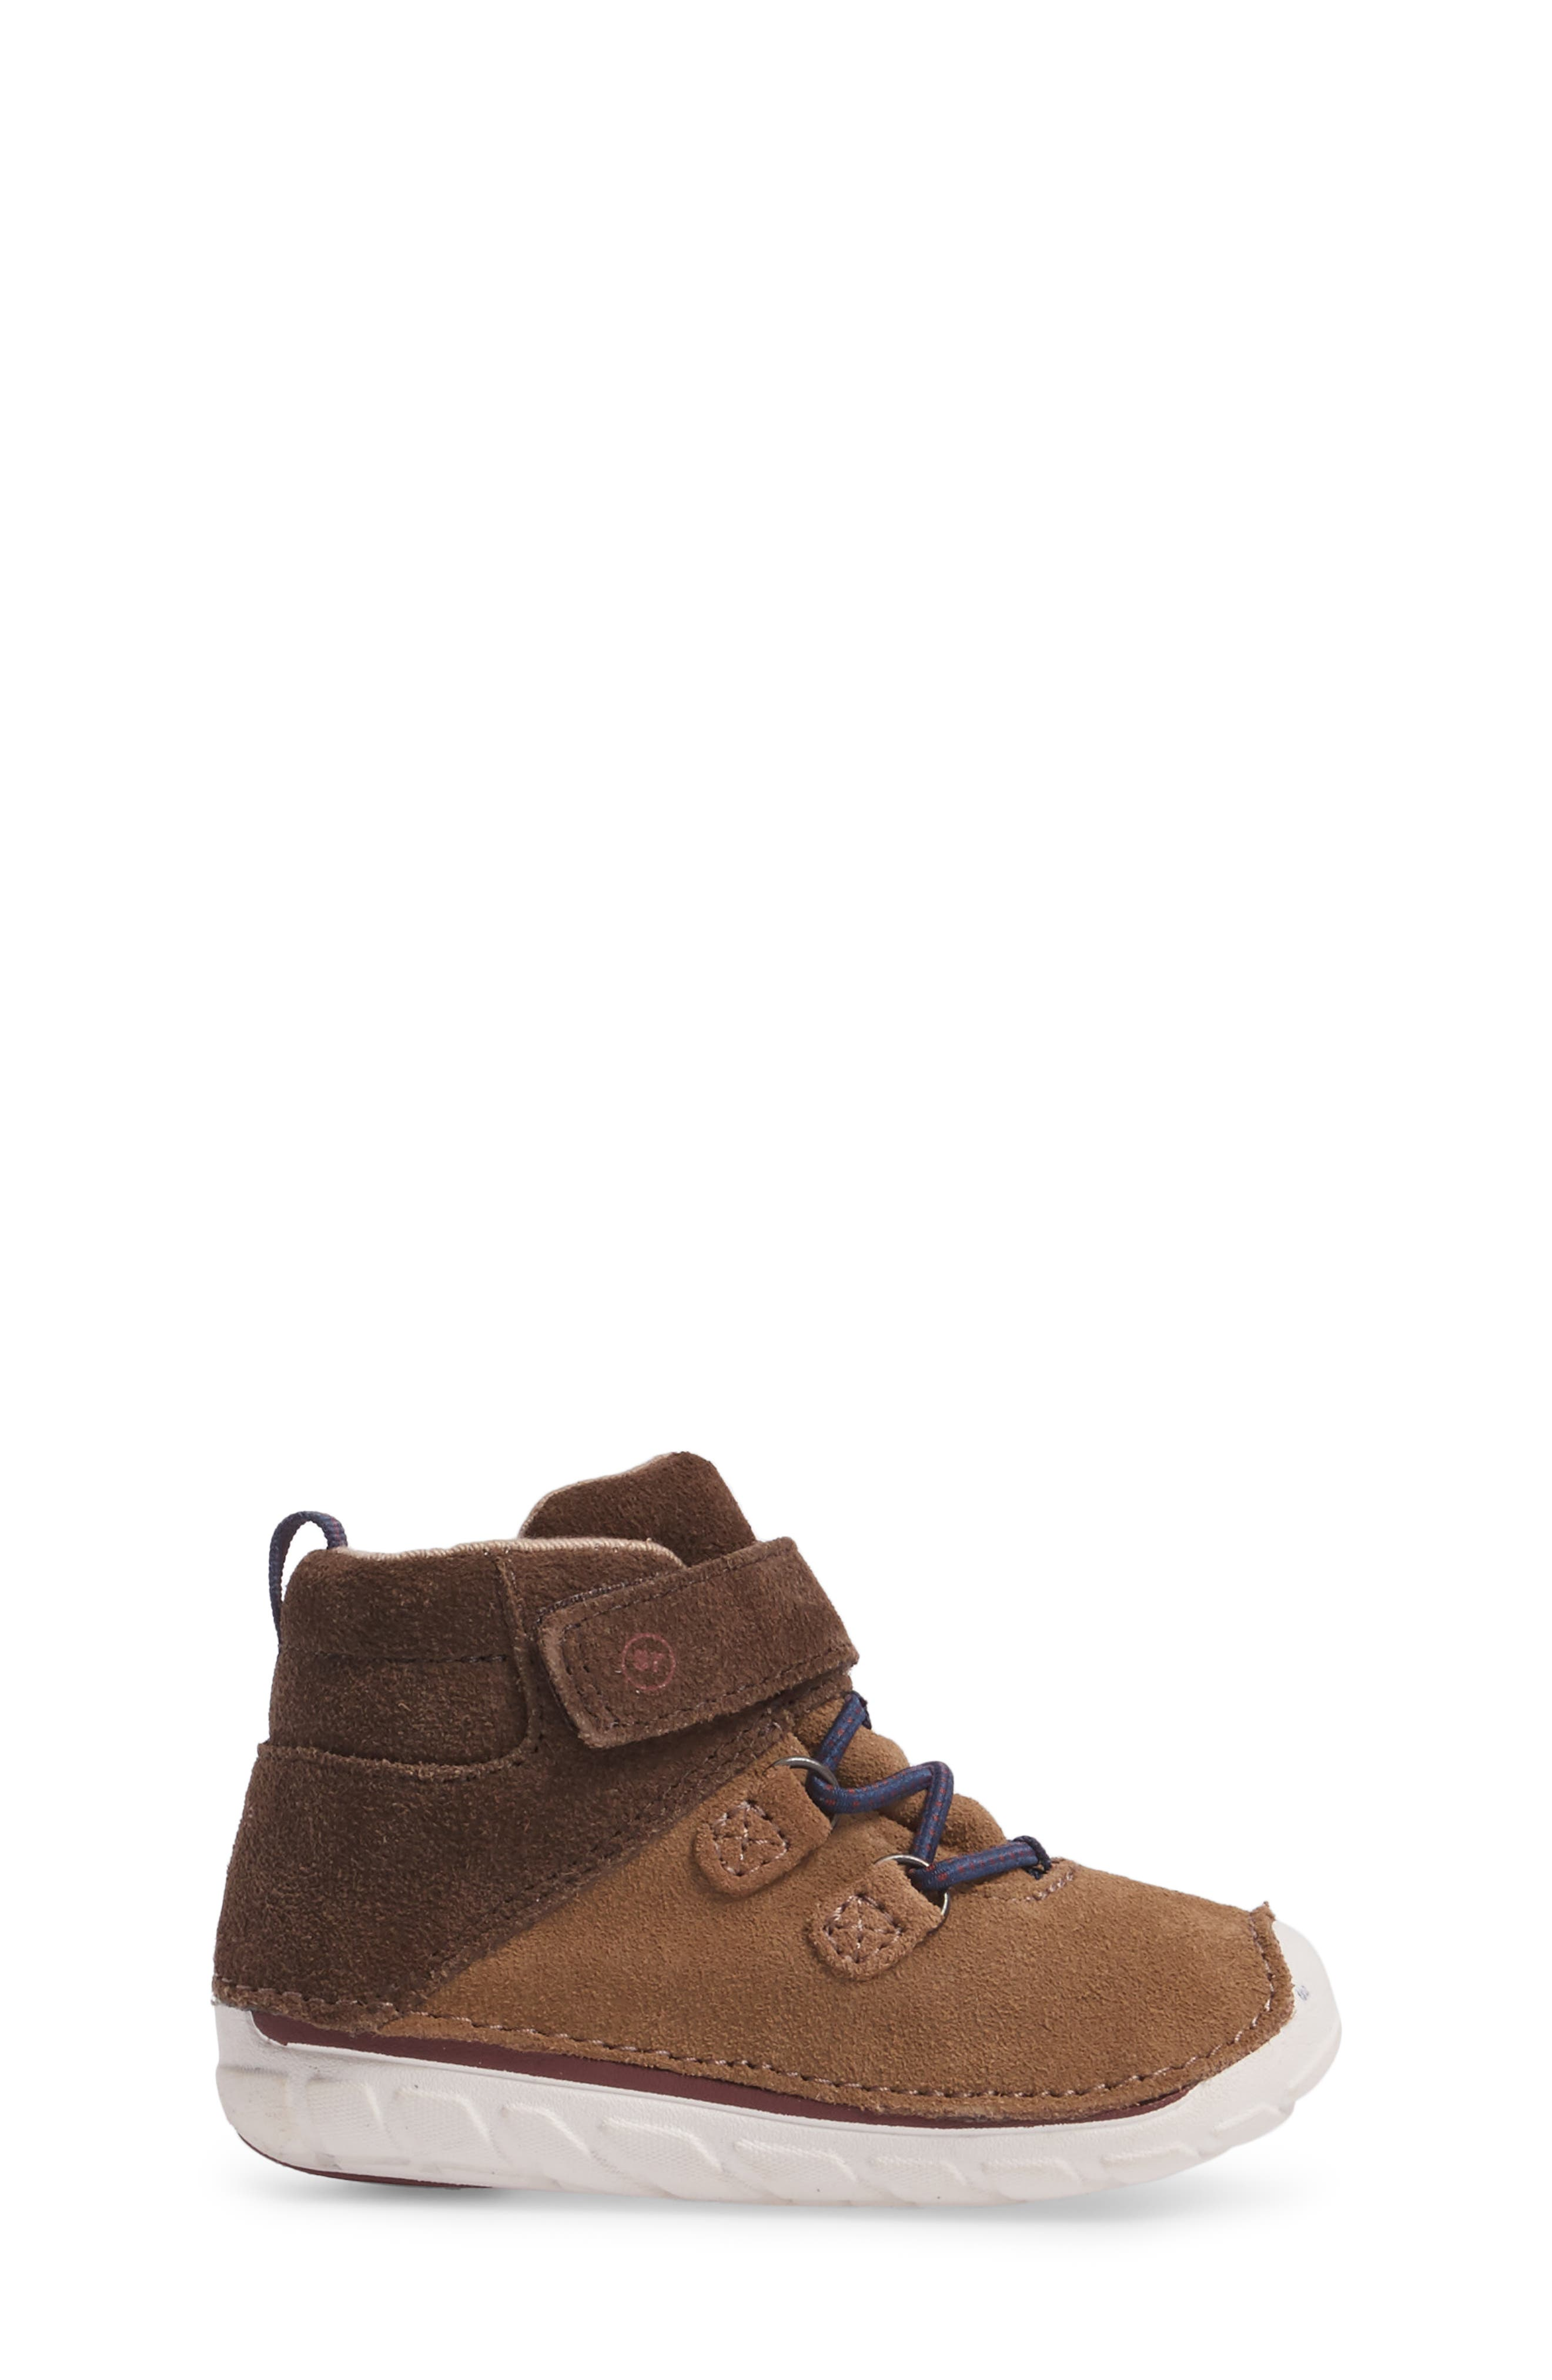 Soft Motion<sup>™</sup> Oliver High Top Sneaker,                             Alternate thumbnail 3, color,                             BROWN SUEDE